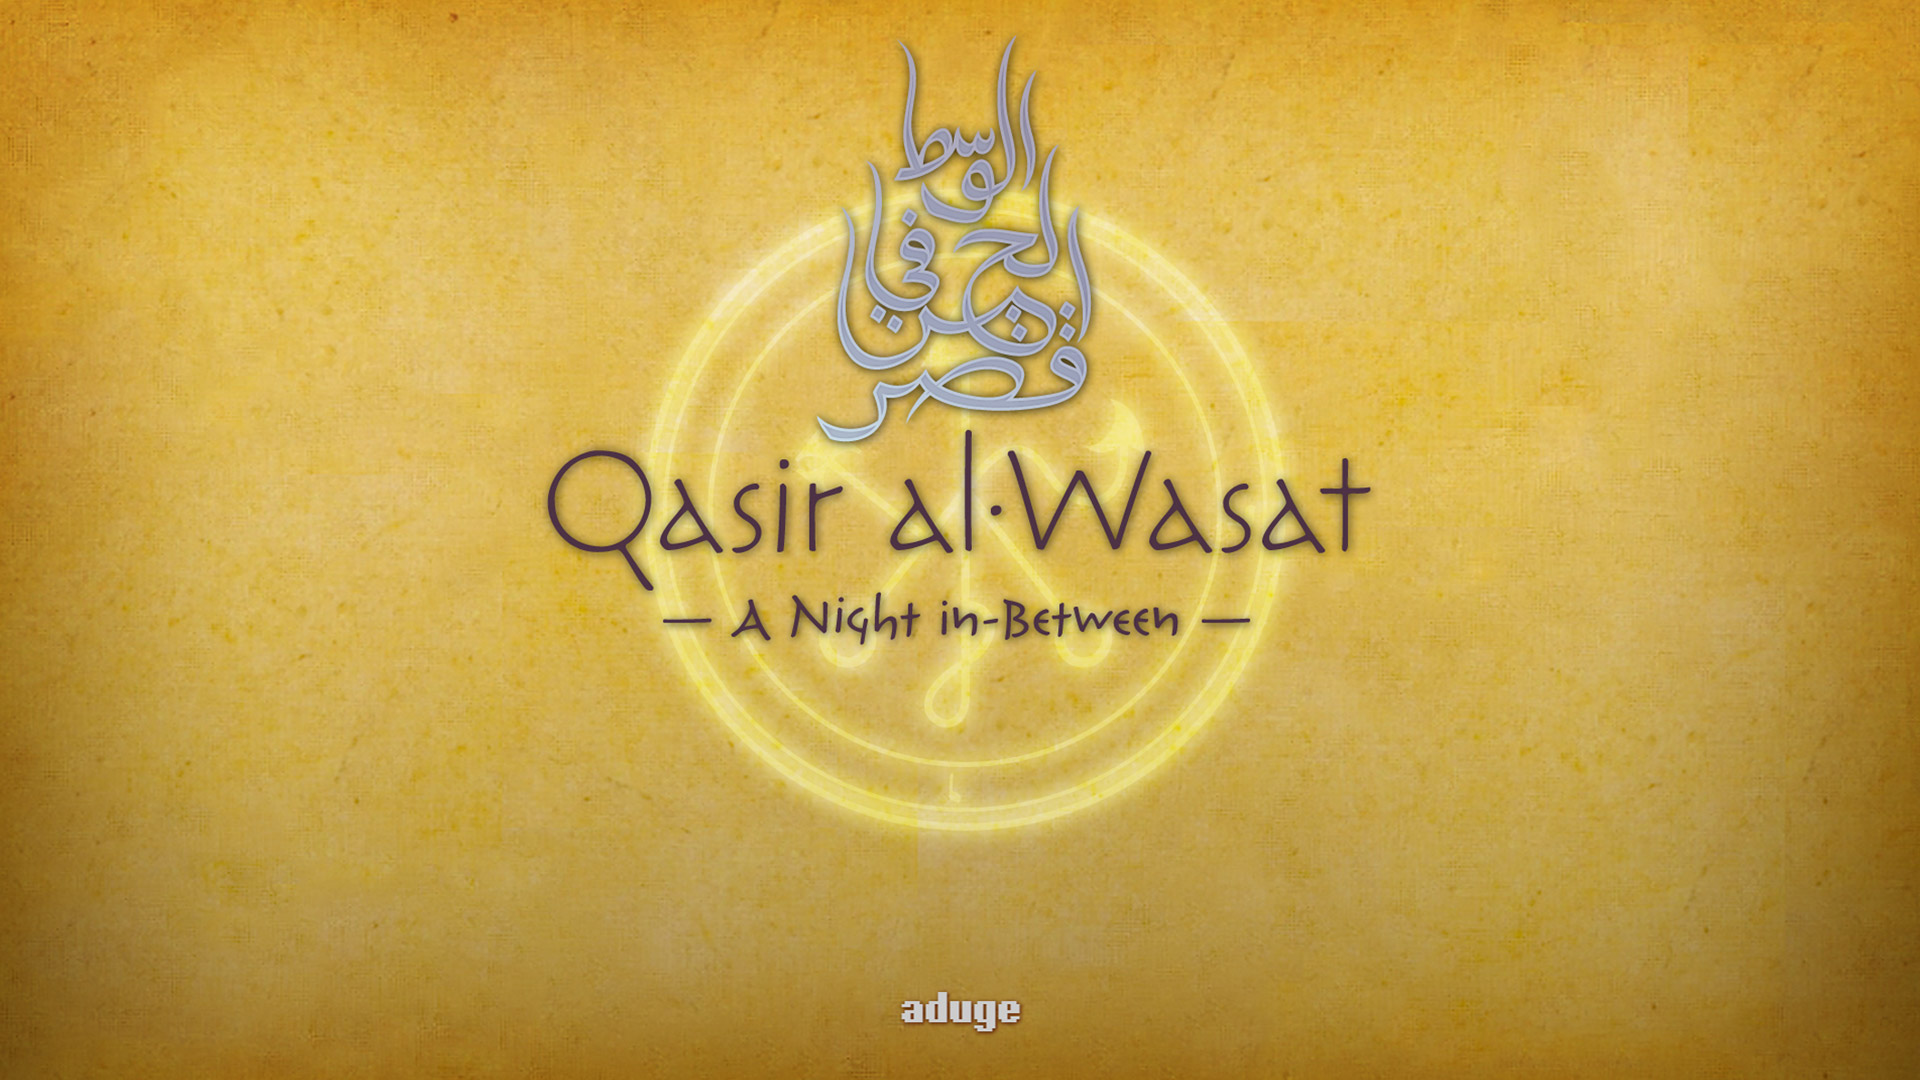 Free Qasir Al-Wasat: A Night in-Between Wallpaper in 1920x1080